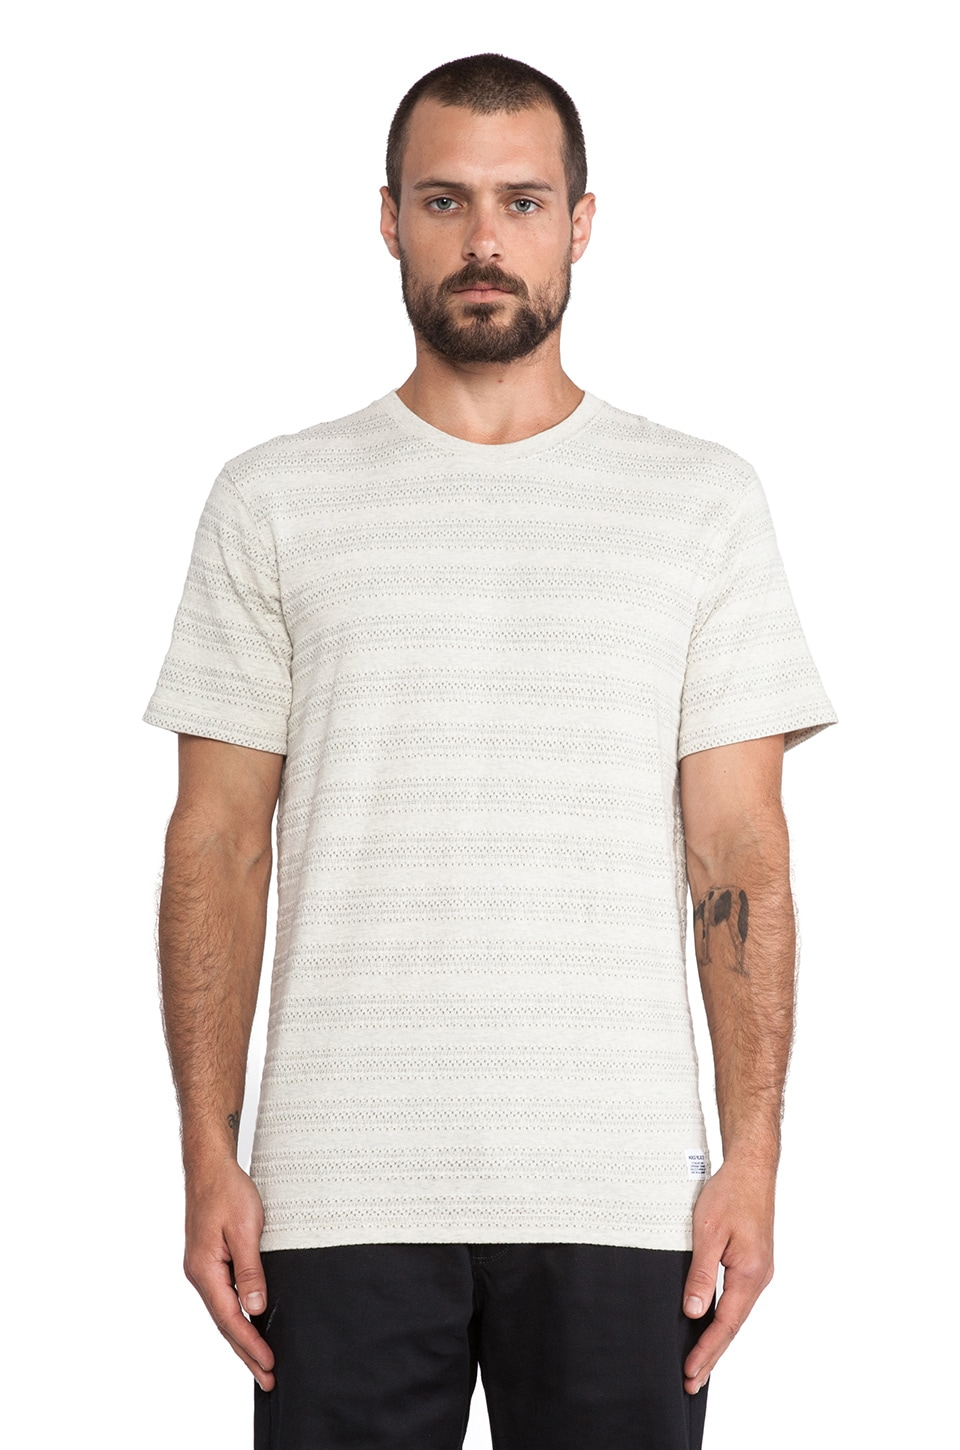 Norse Projects Niels Indigo Textured Stripe Tee in Kit White Melange